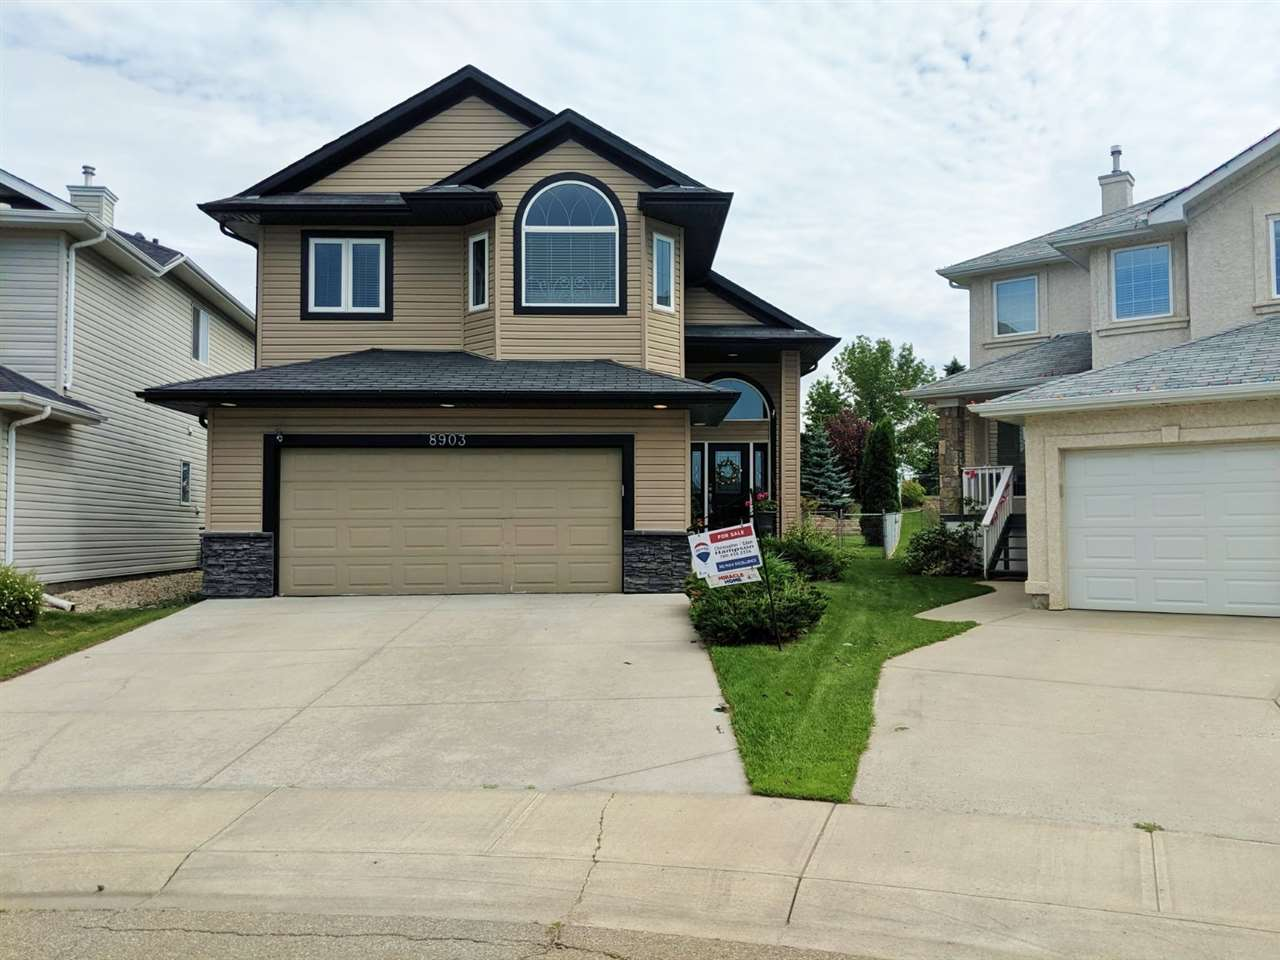 MLS® listing #E4169013 for sale located at 8903 210 Street